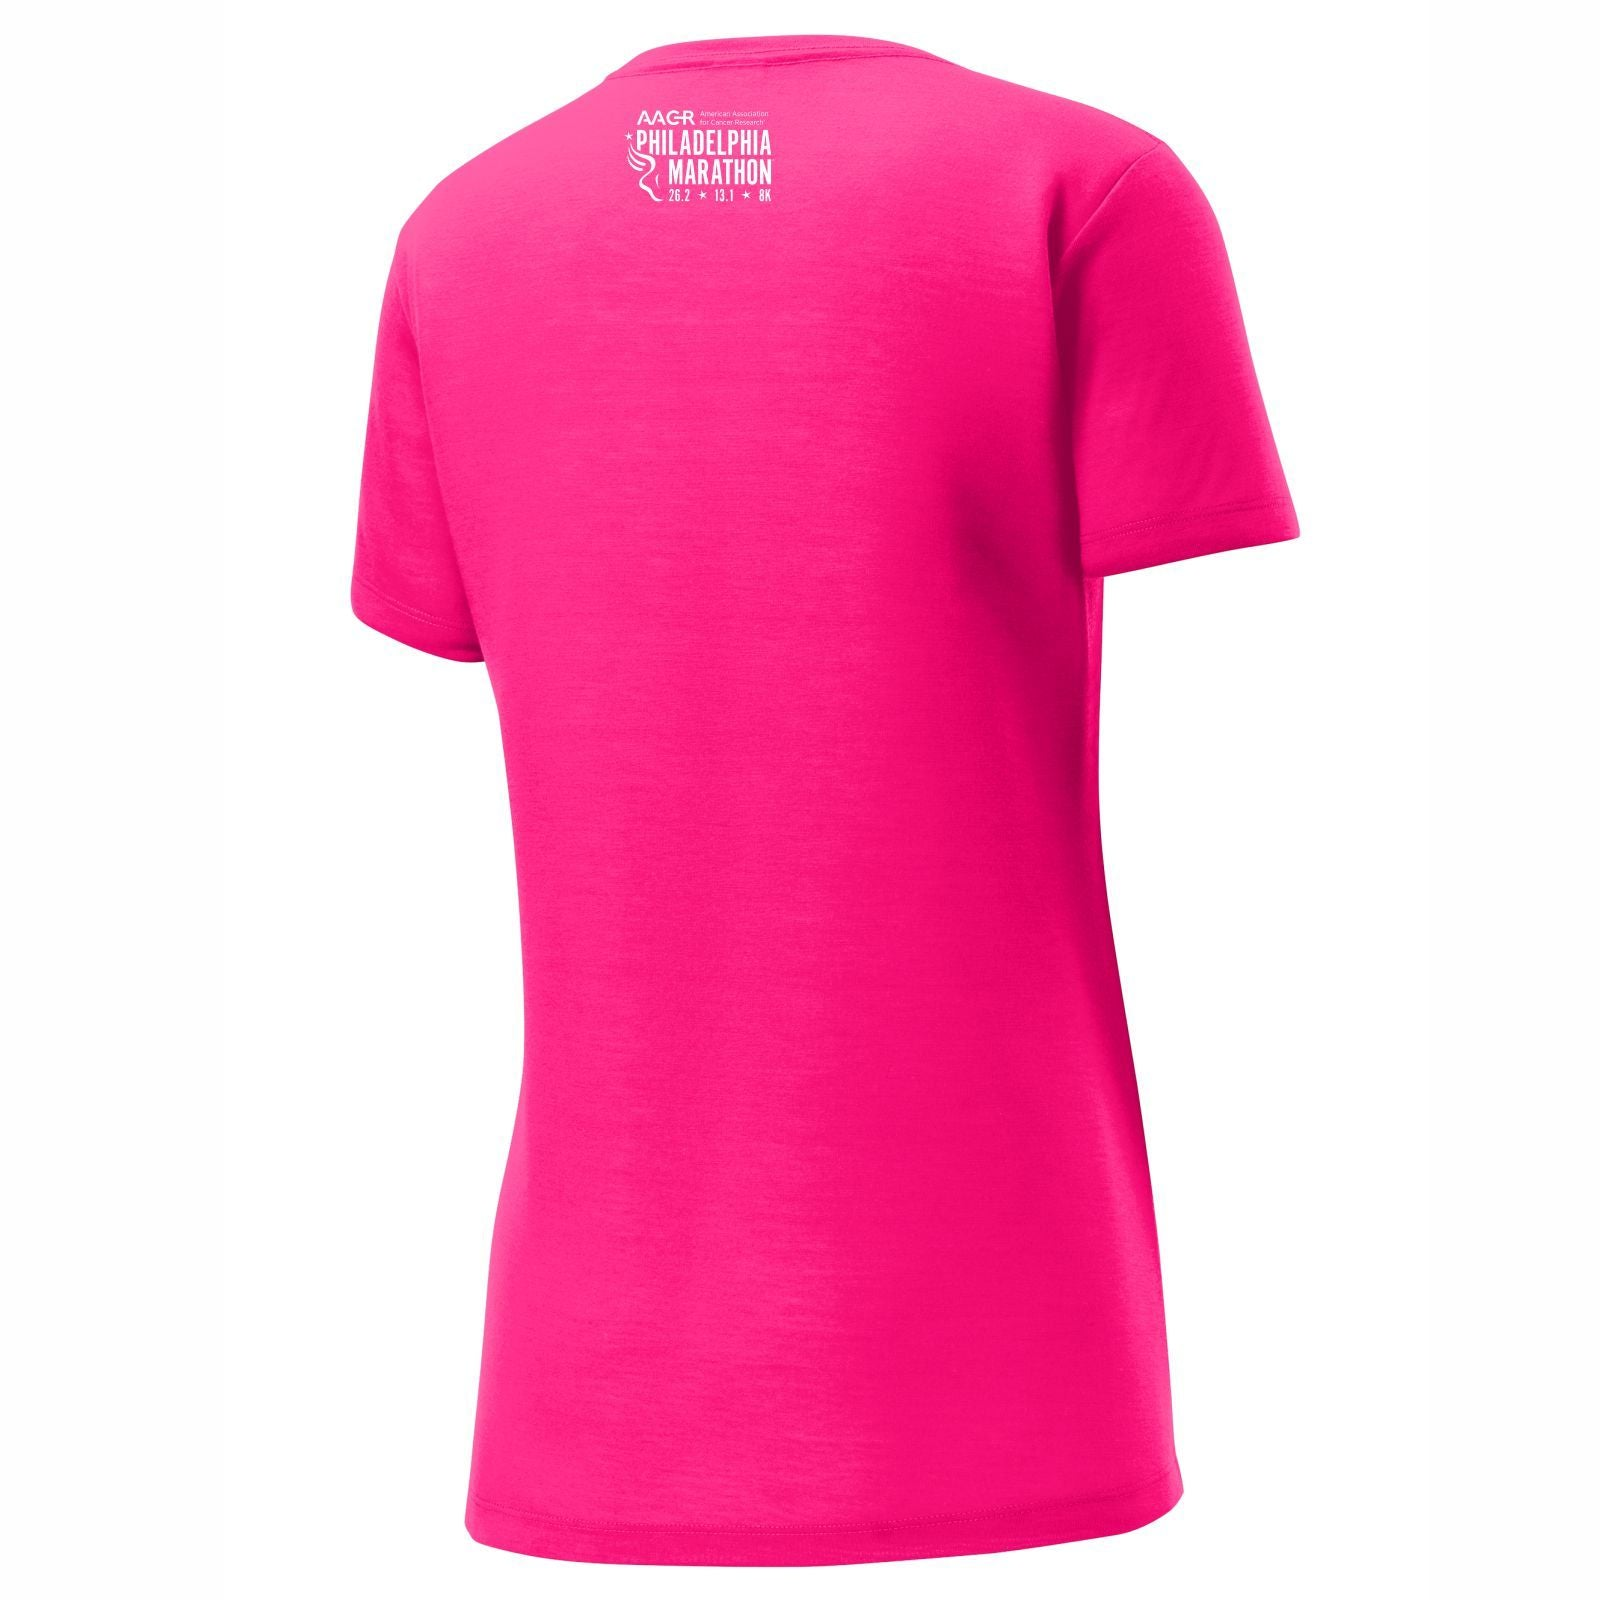 AACR Philadelphia Marathon 'Run Philly' Women's SS Tech Scoop-Neck Tee - Neon Pink